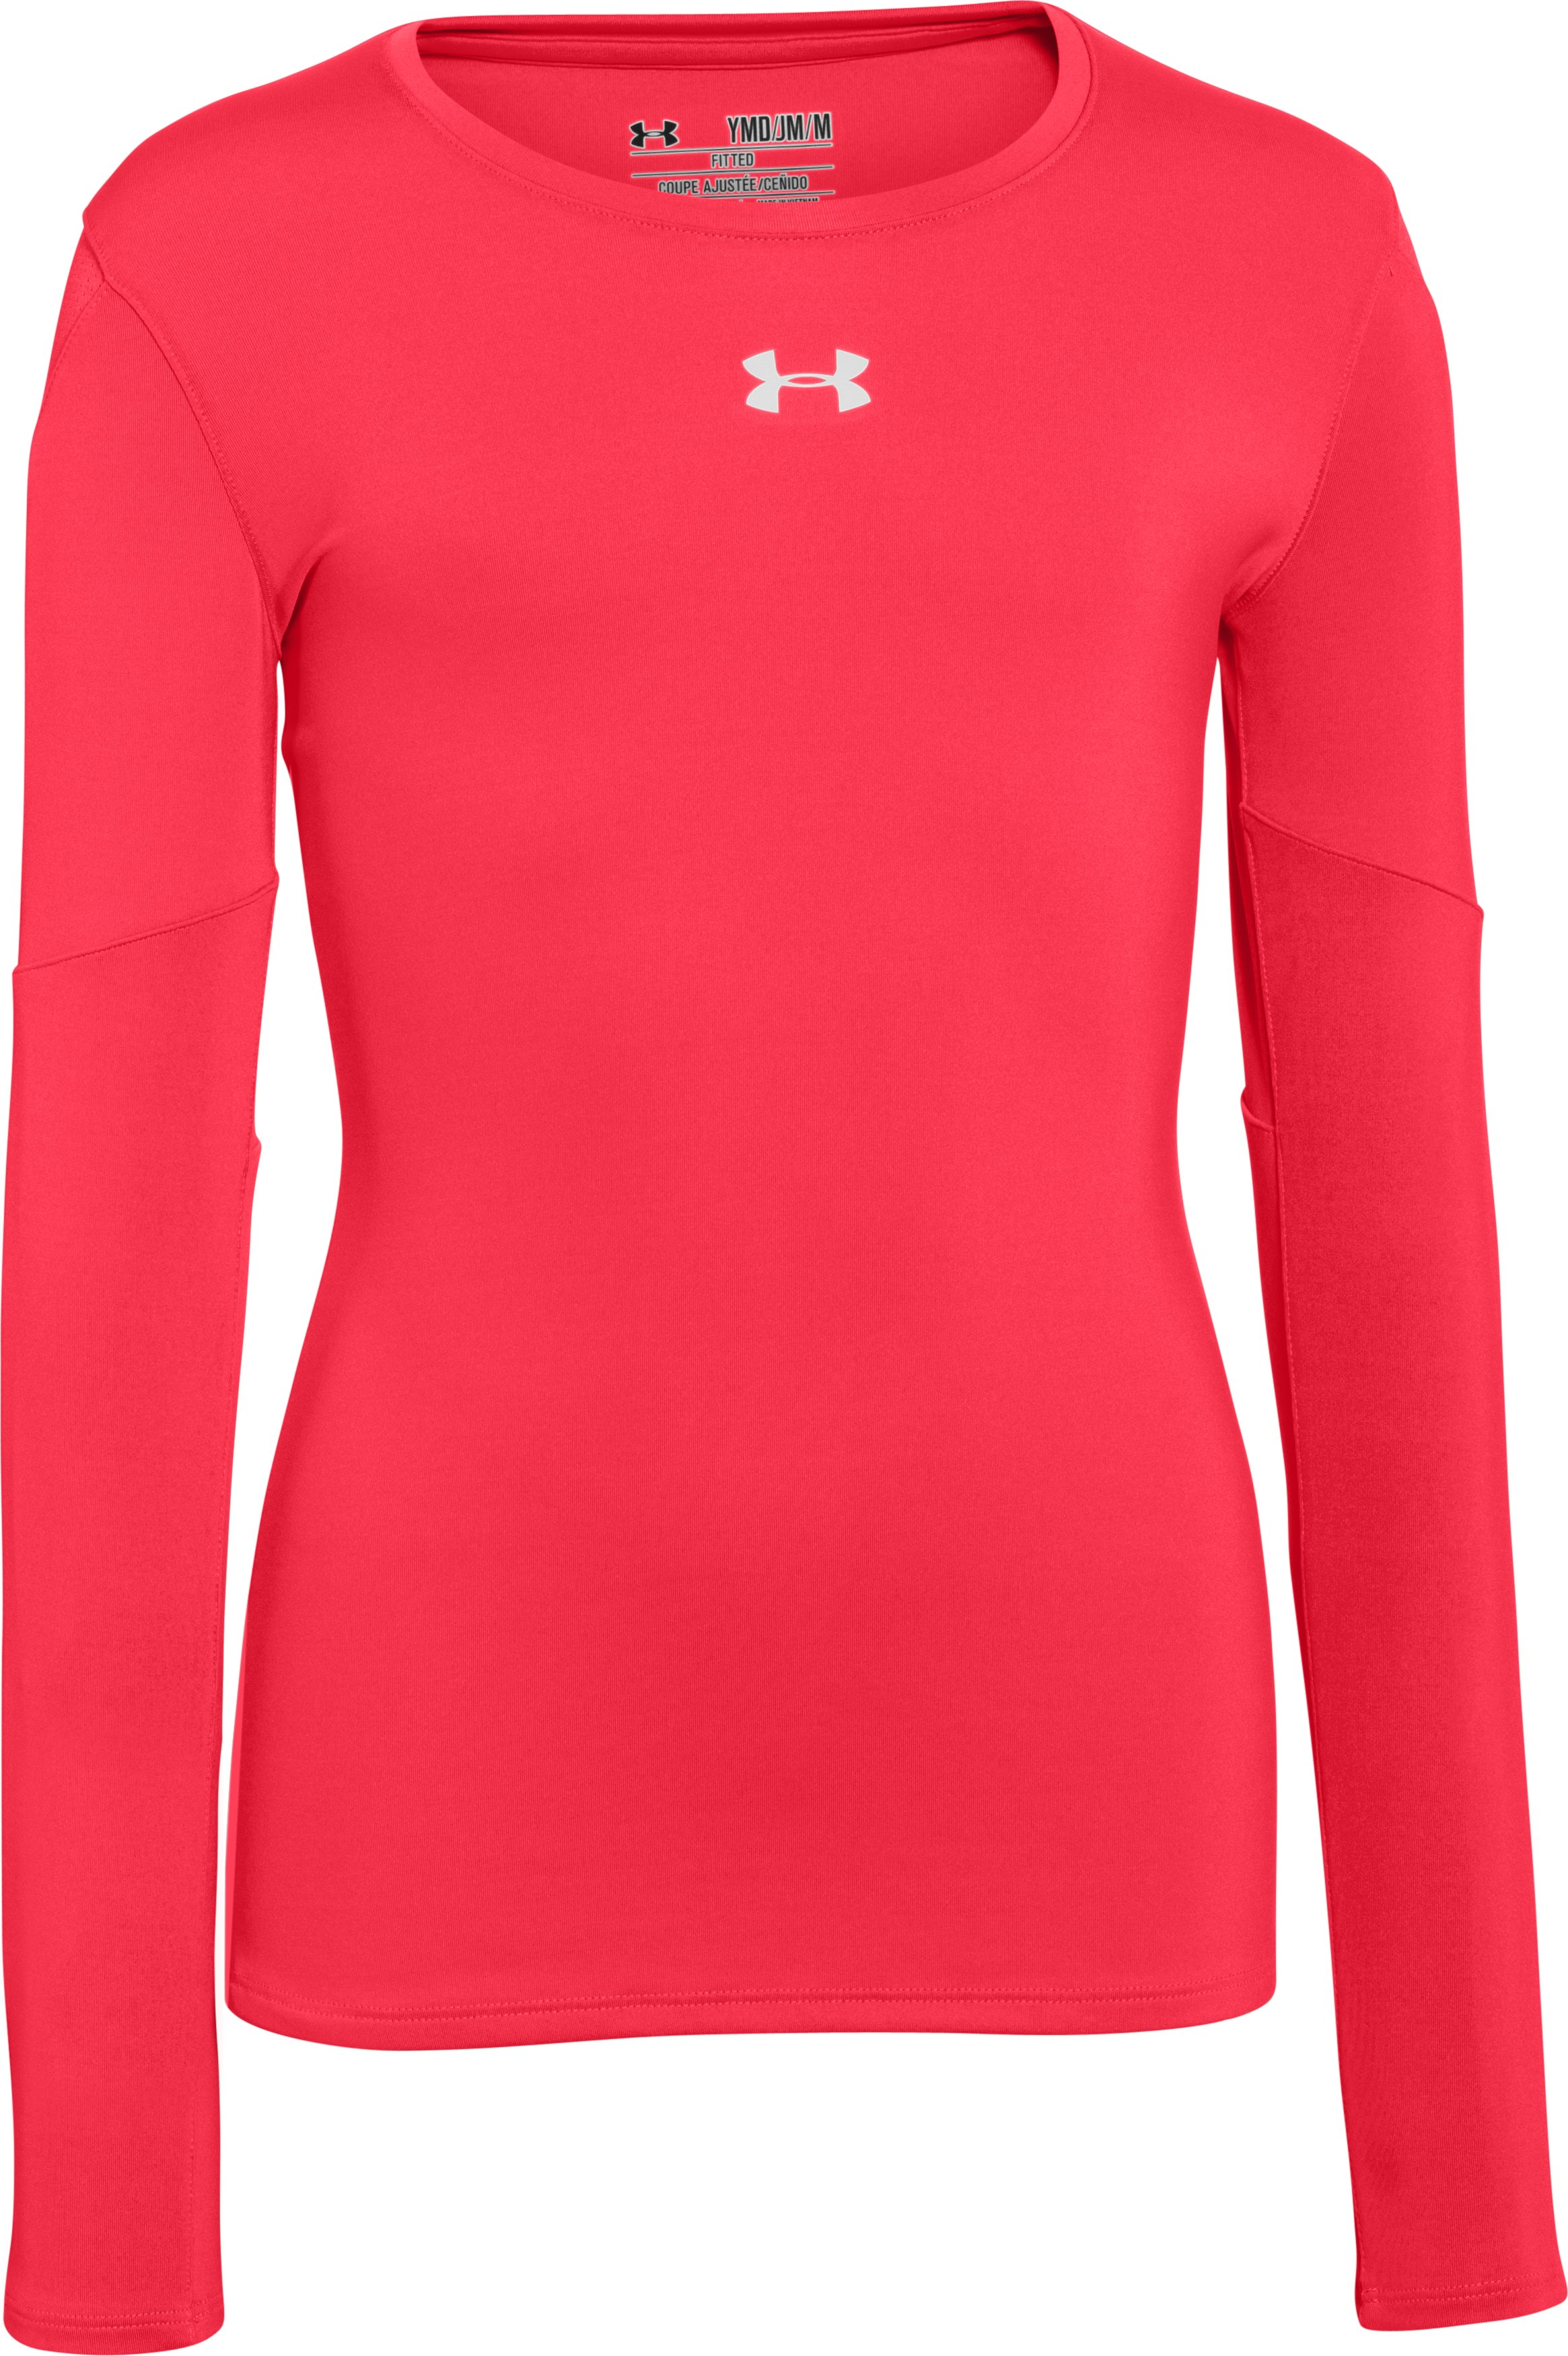 Girls' UA Block Party Long Sleeve Jersey, Neo Pulse